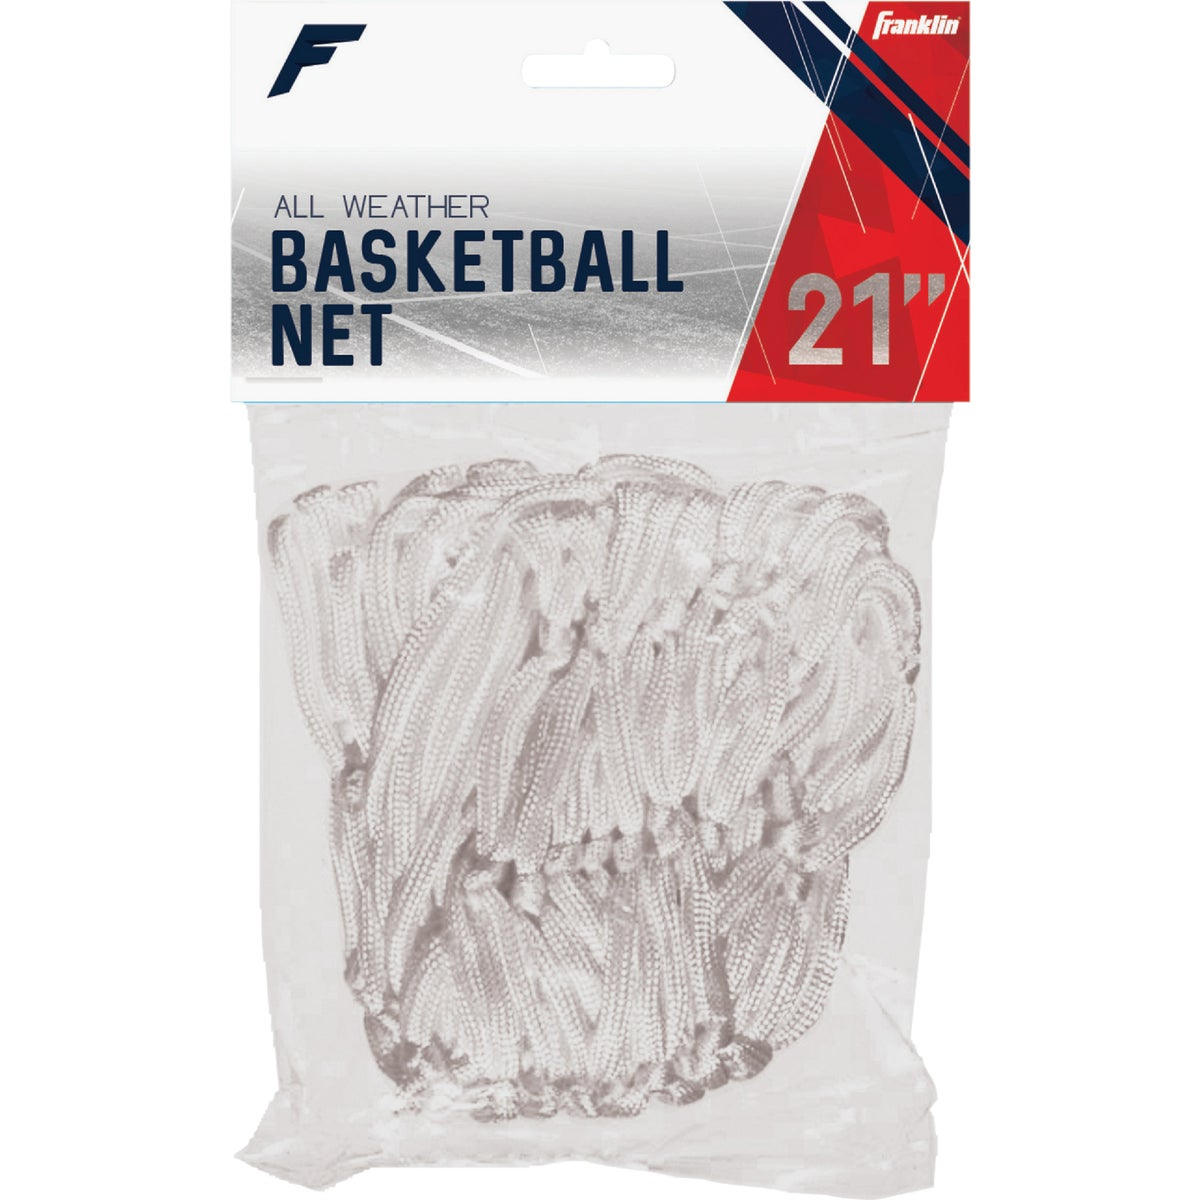 WHT BASKETBALL NET